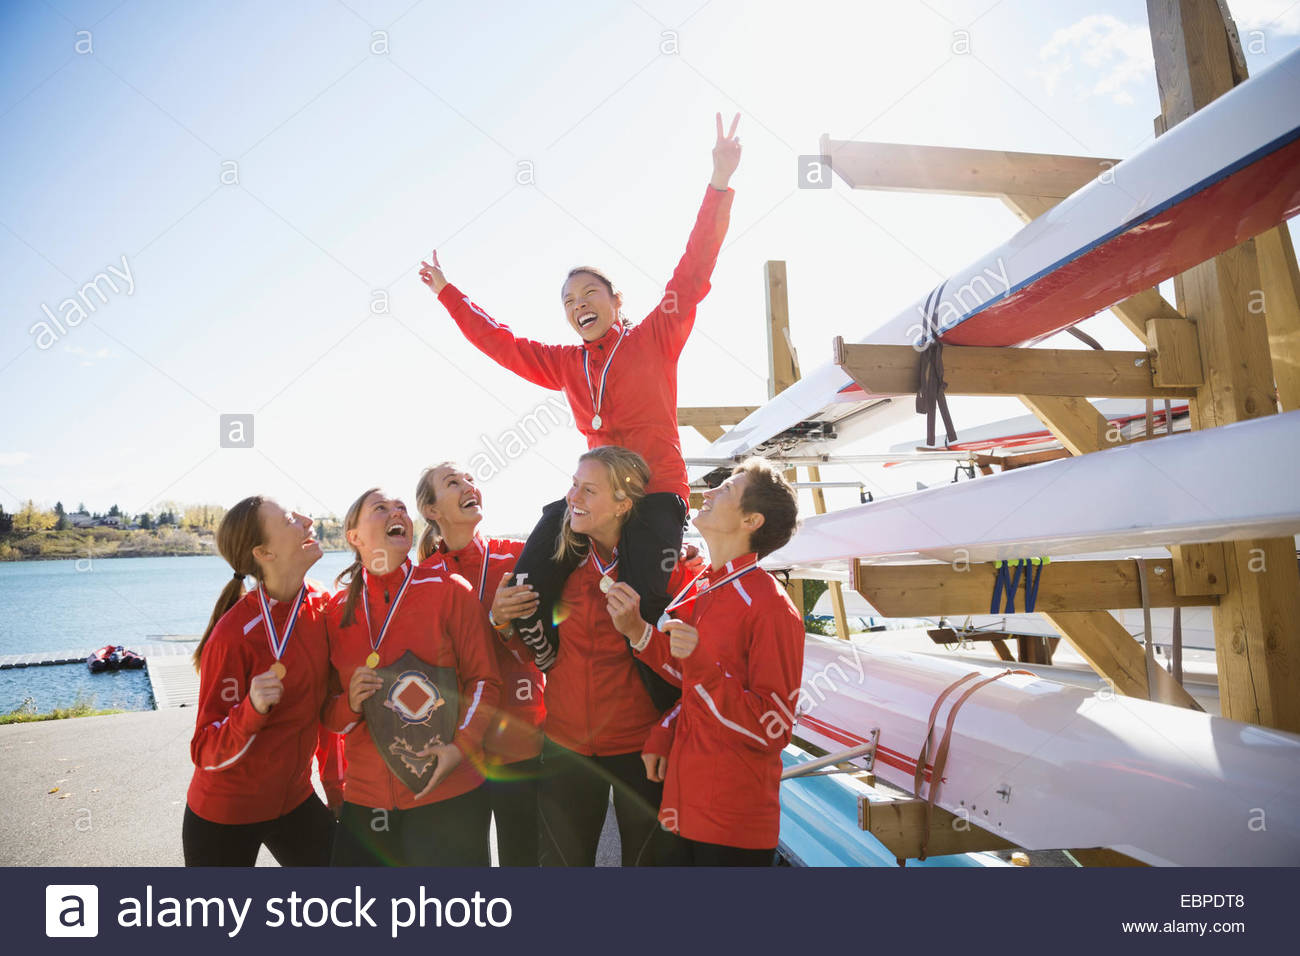 Rowing team with medals celebrating near sculls - Stock Image